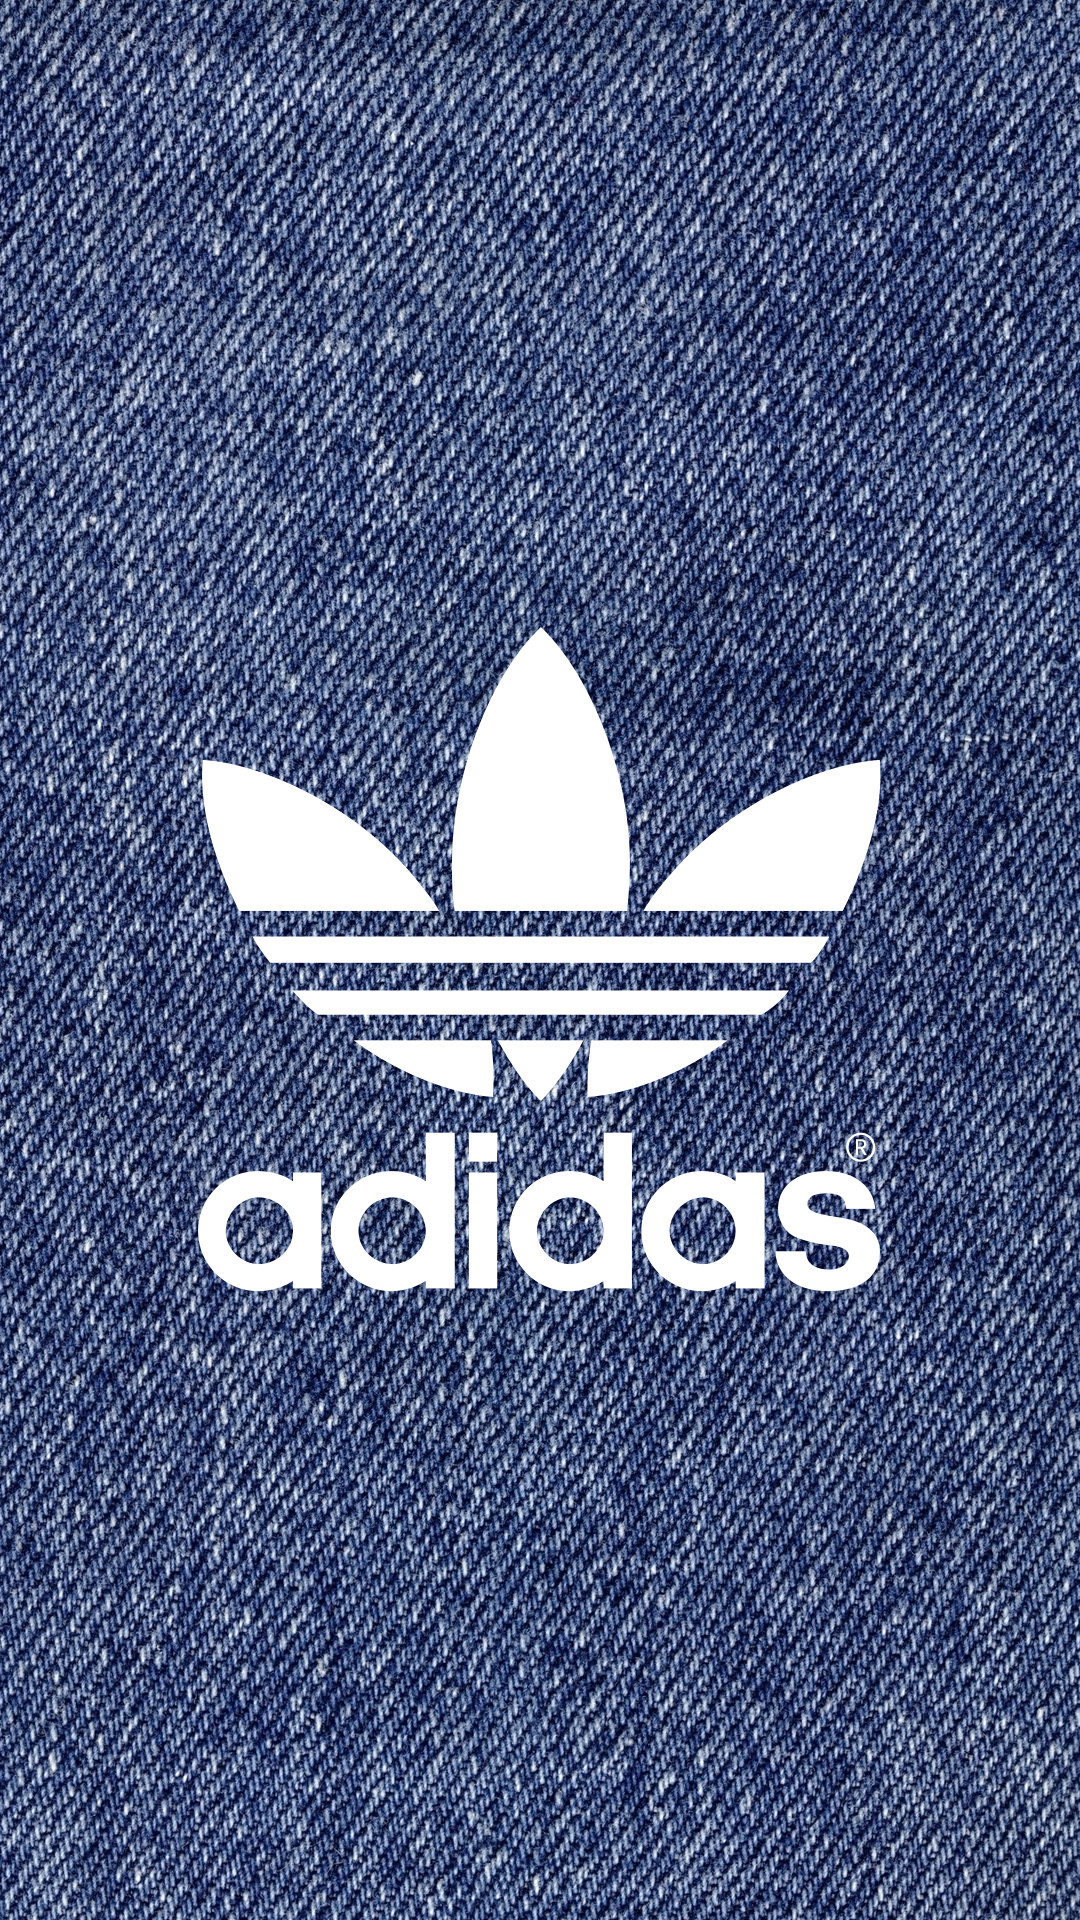 adidas20 - 25 adidas HQ Smartphone Wallpaper Collection